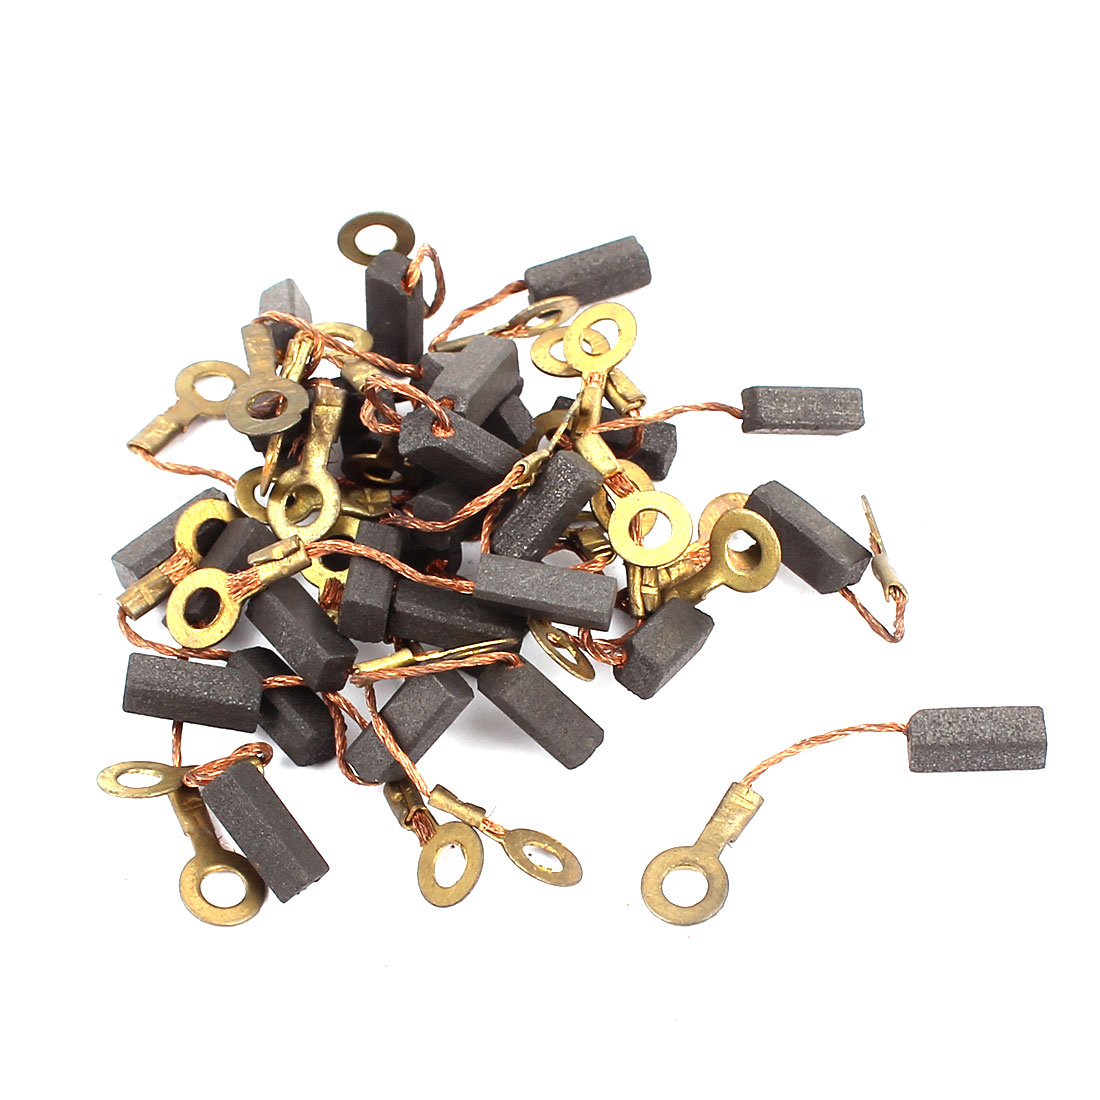 15 Pairs Electric Drill Motor Rotary Power Tool Carbon Brush 3.5 x 4 x 10mm No Spring